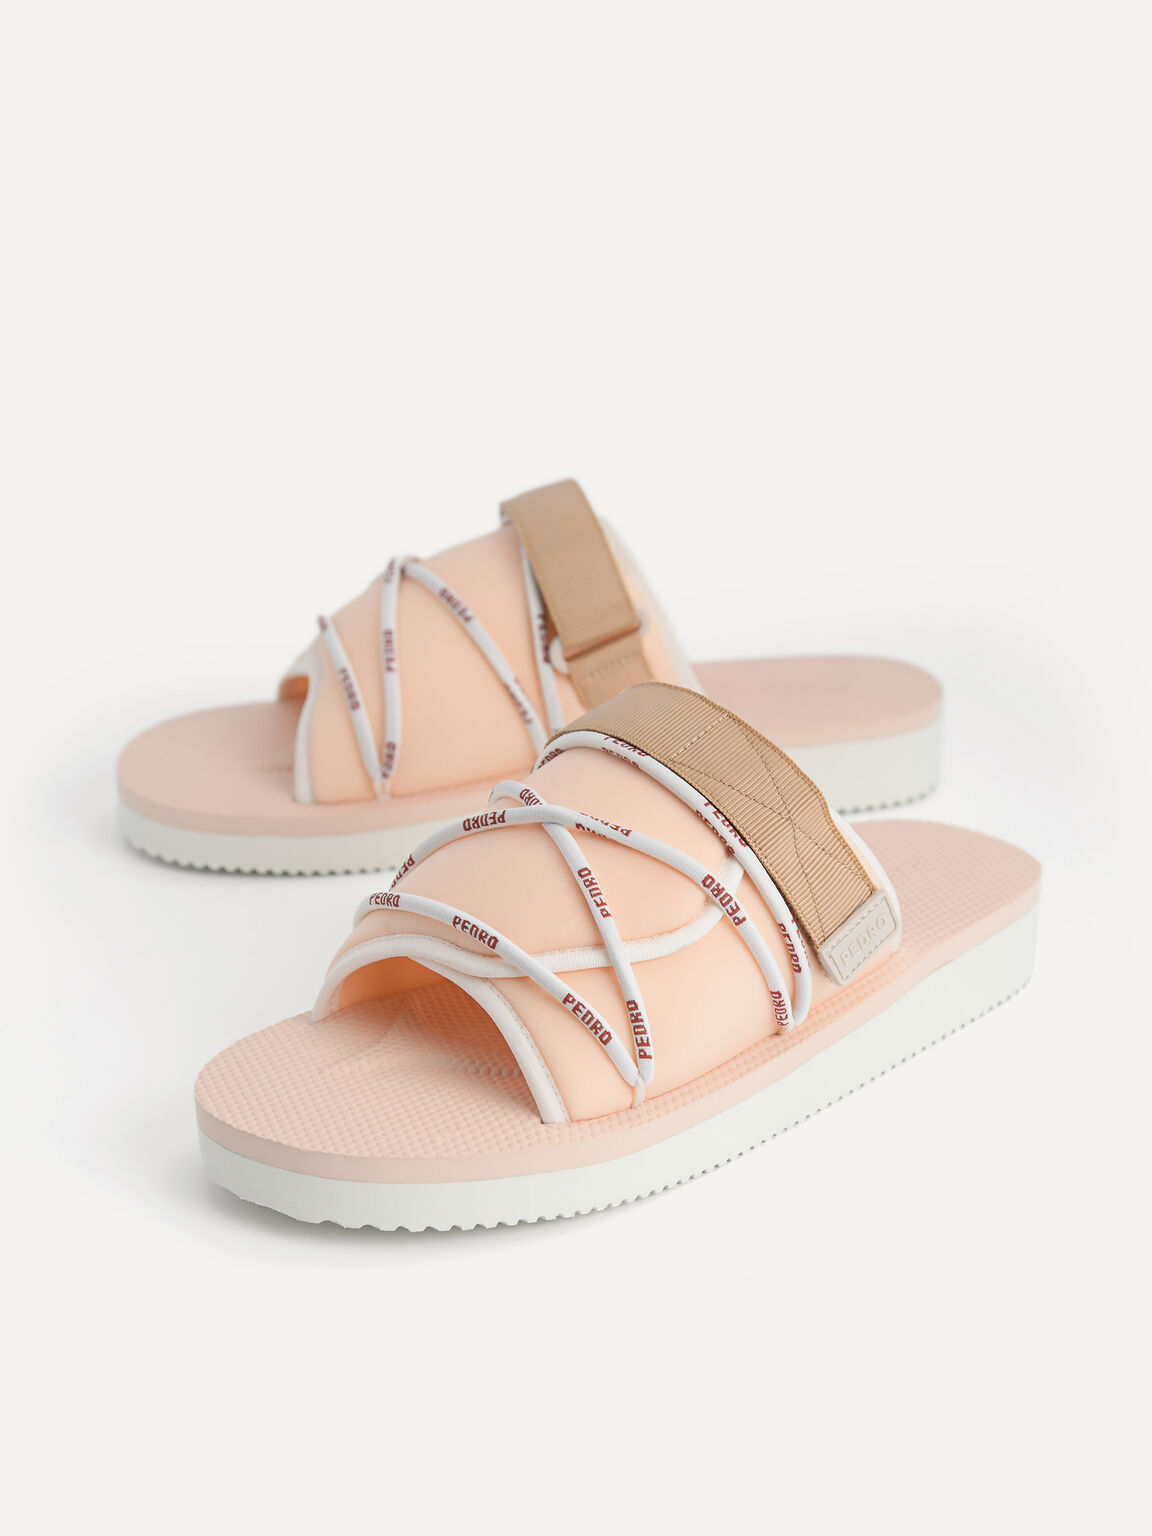 Casual Slides with Lace Detail, Nude, hi-res